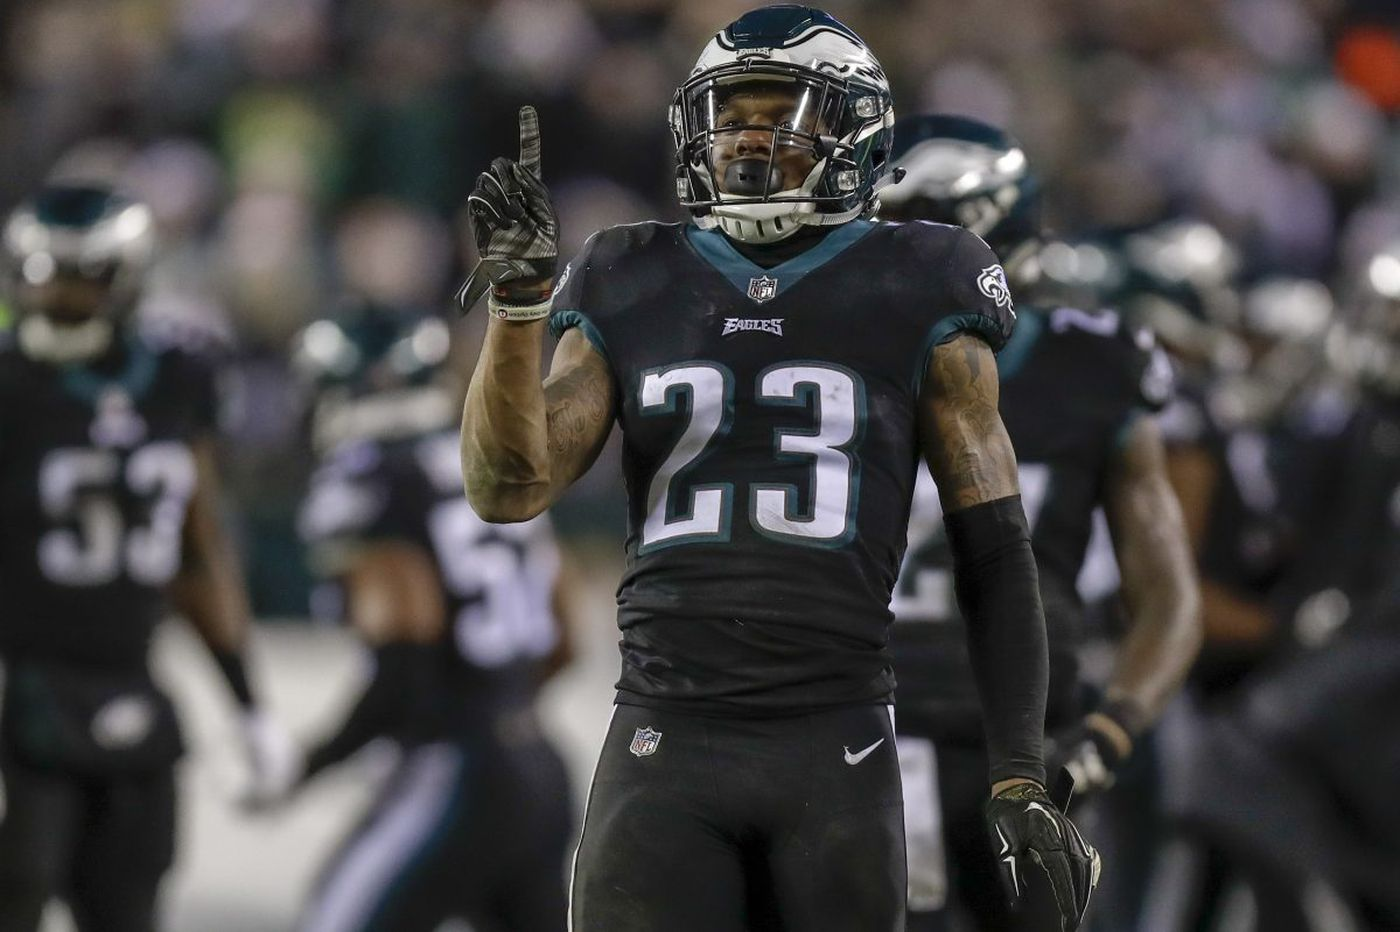 Eagles veterans who have never been to playoffs appreciate ending a long wait